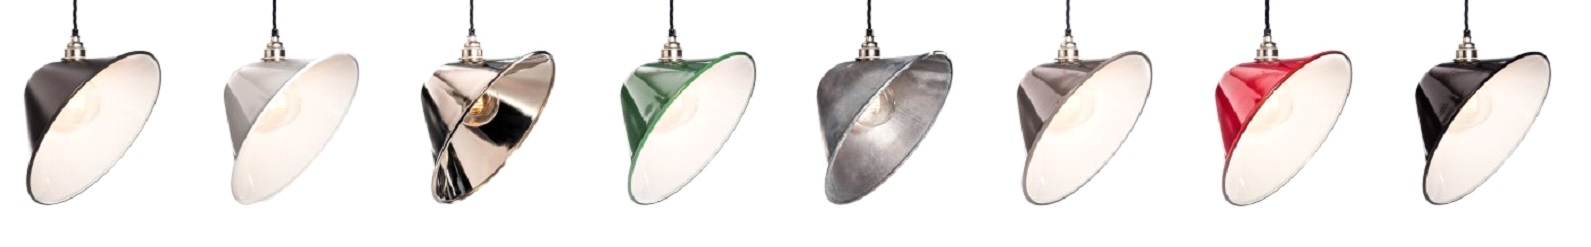 header-factorylux-angled-lamp-shades